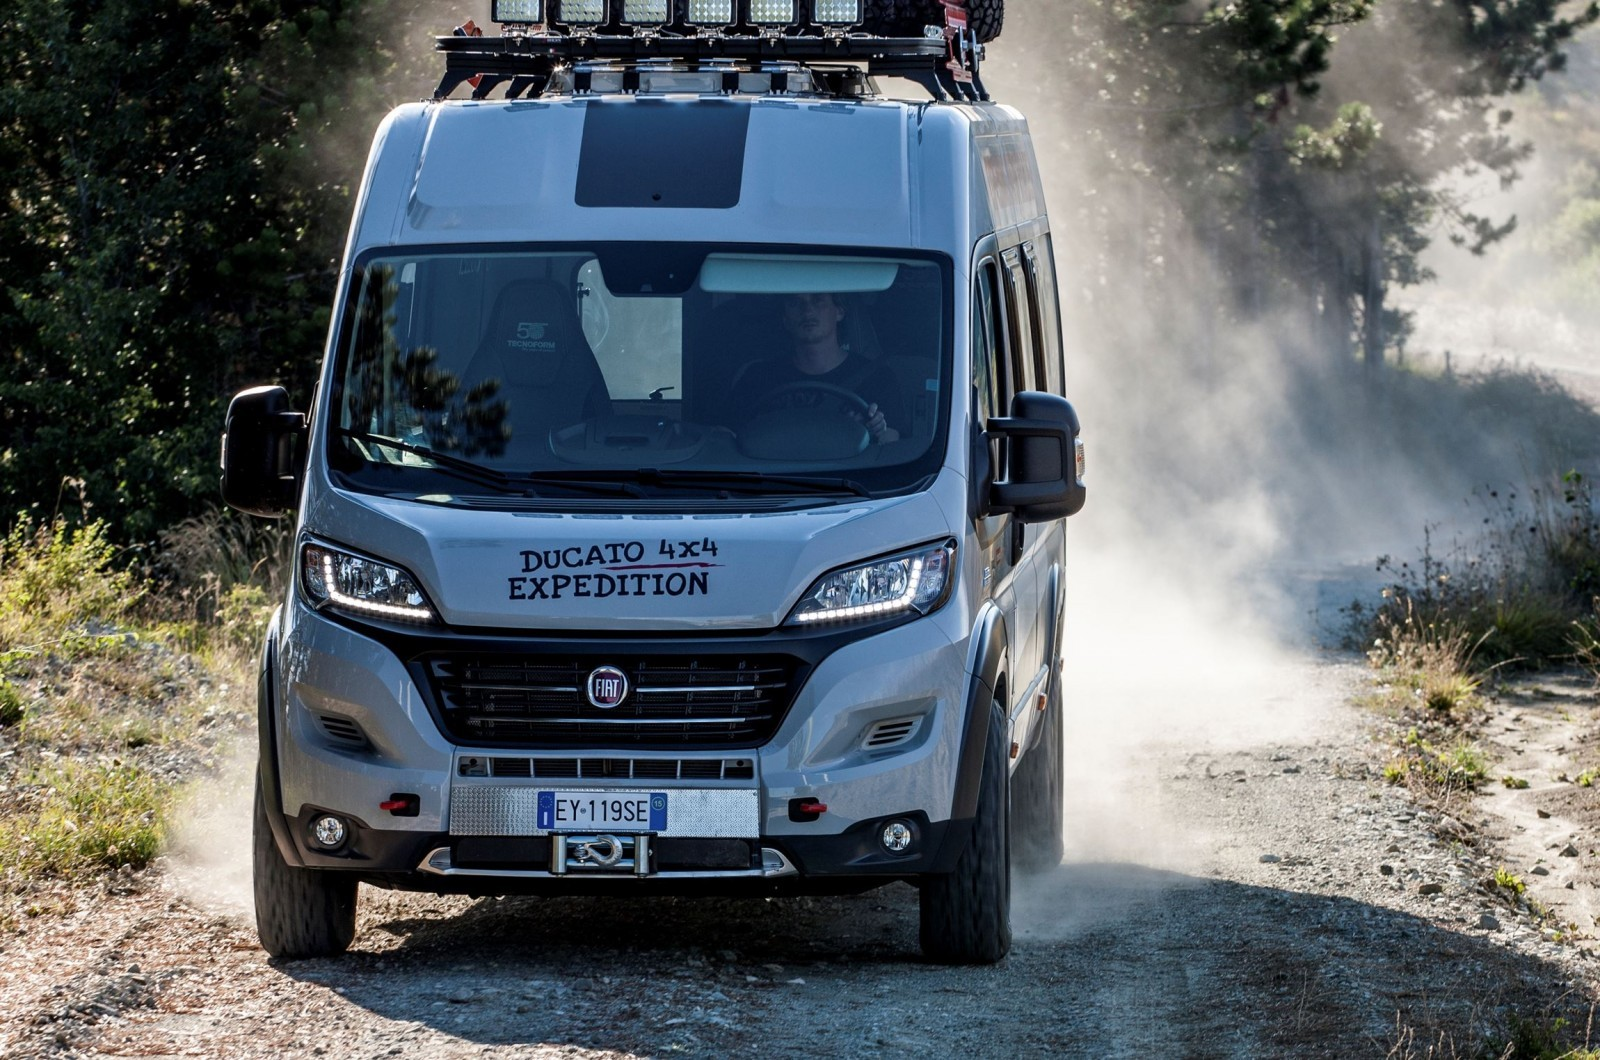 Fiat Updates The Ducato 4x4 Expedition Show Van To Celebrate The